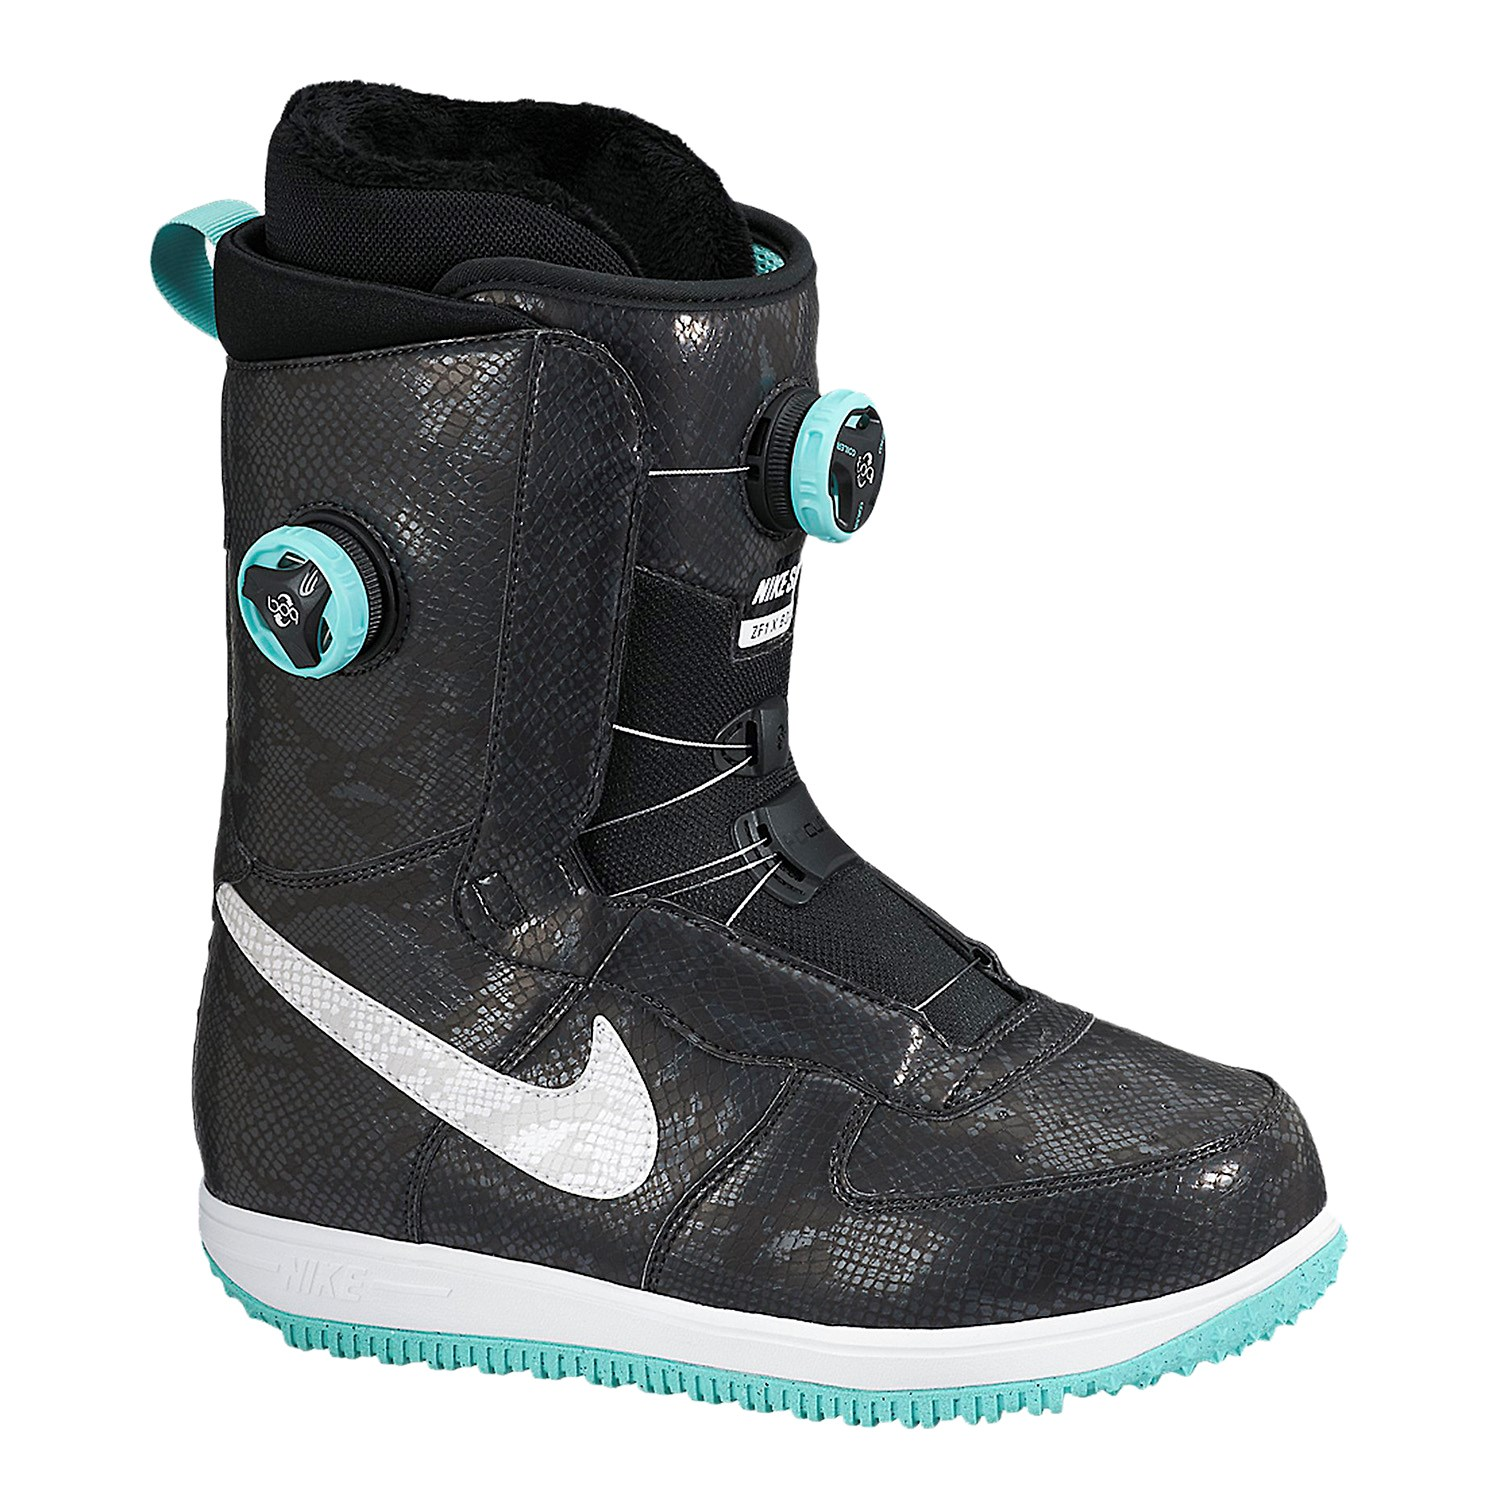 Nike SB Zoom Force 1 Boa Snowboard Boots - Women s 2015